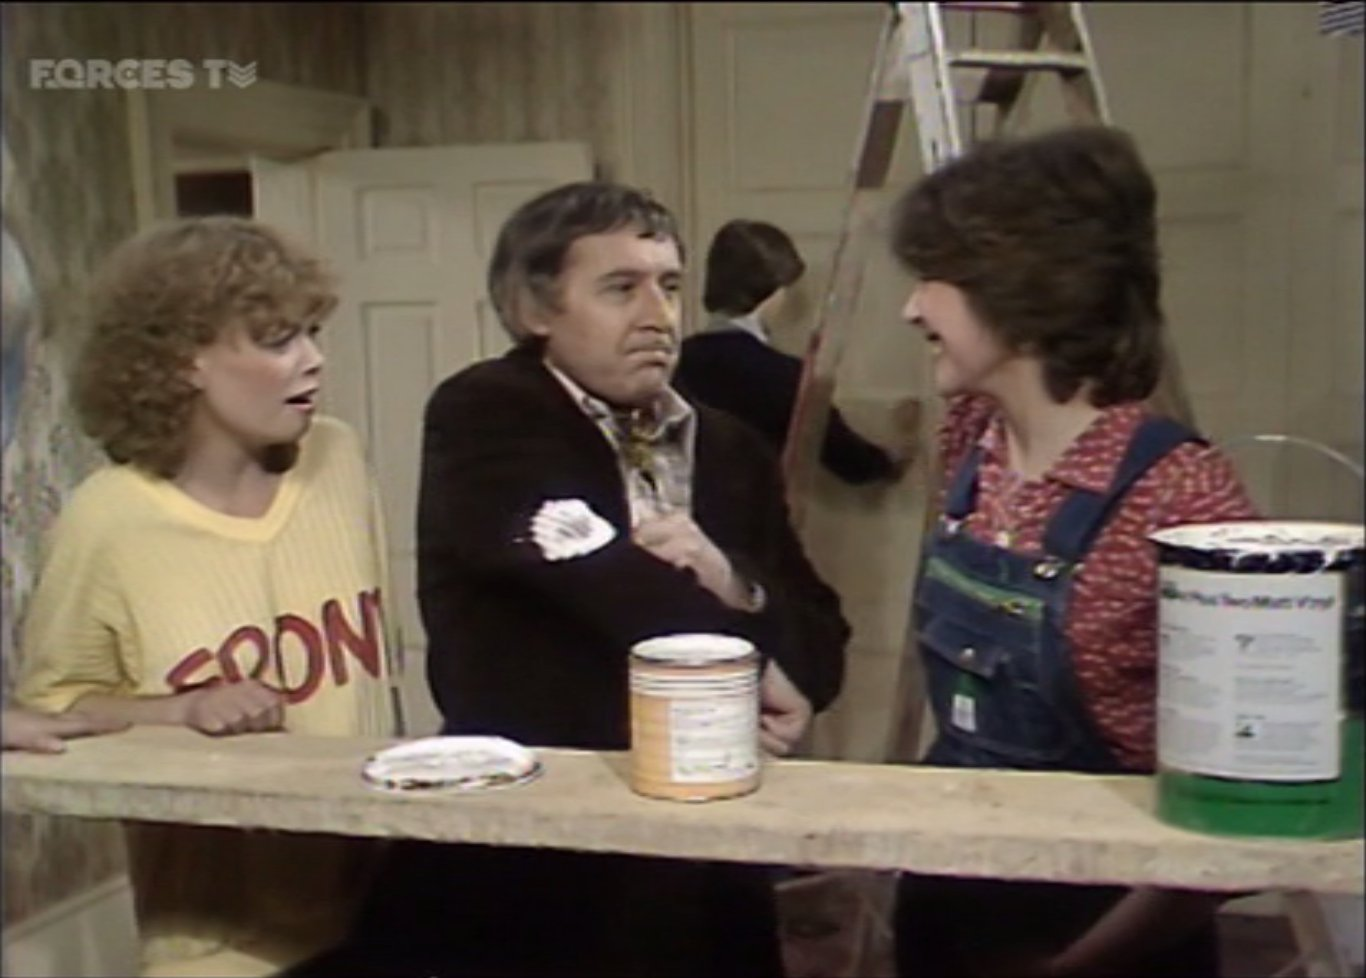 Stacy Dorning, Robert Gillespie, and Jenny Quayle in Keep It in the Family (1980)